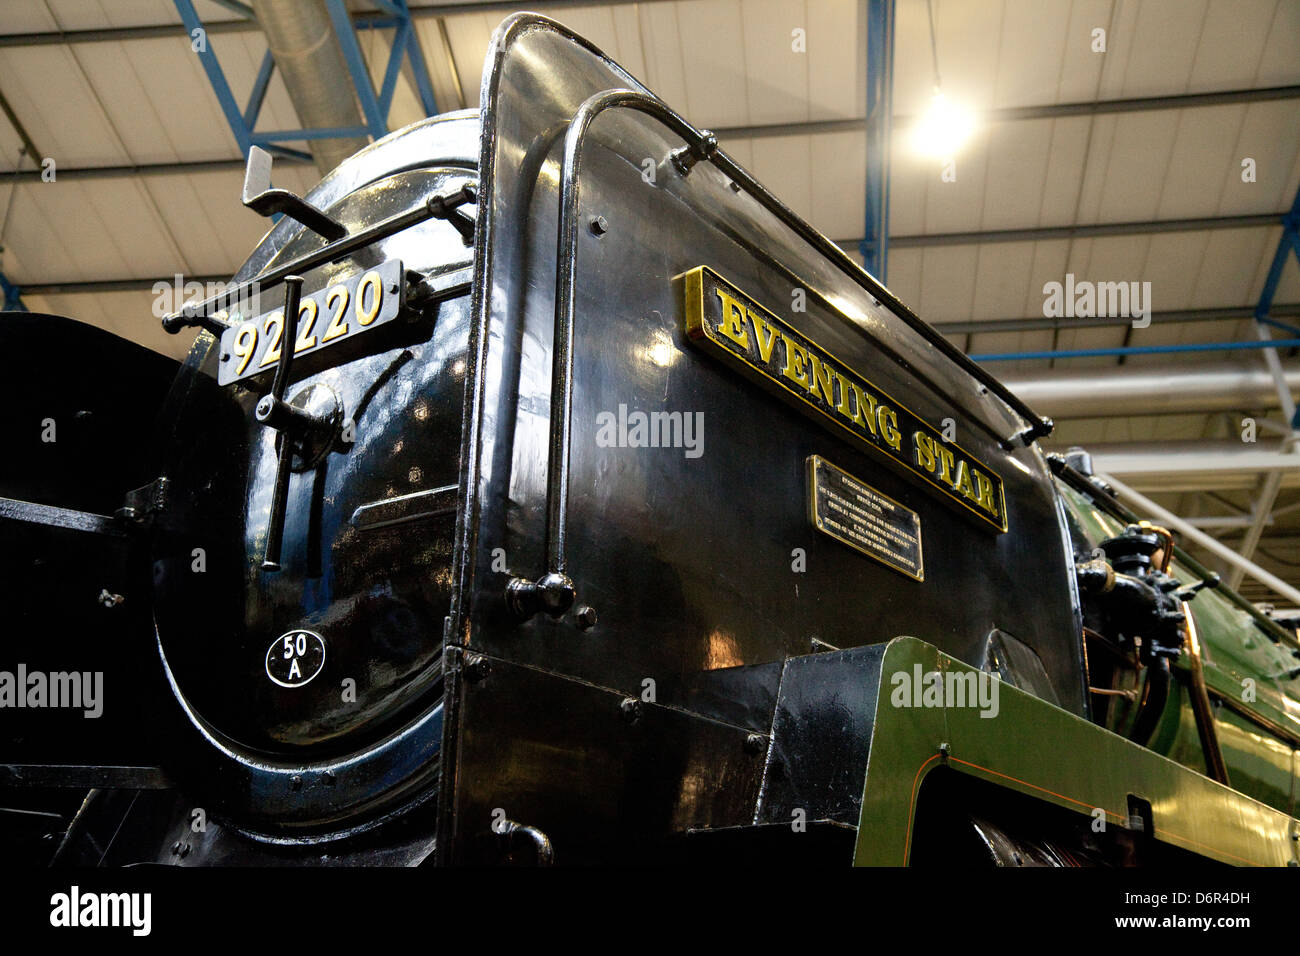 The 'Evening Star', a 9F Class steam engine locomotive, the National Railway Museum, York UK - Stock Image